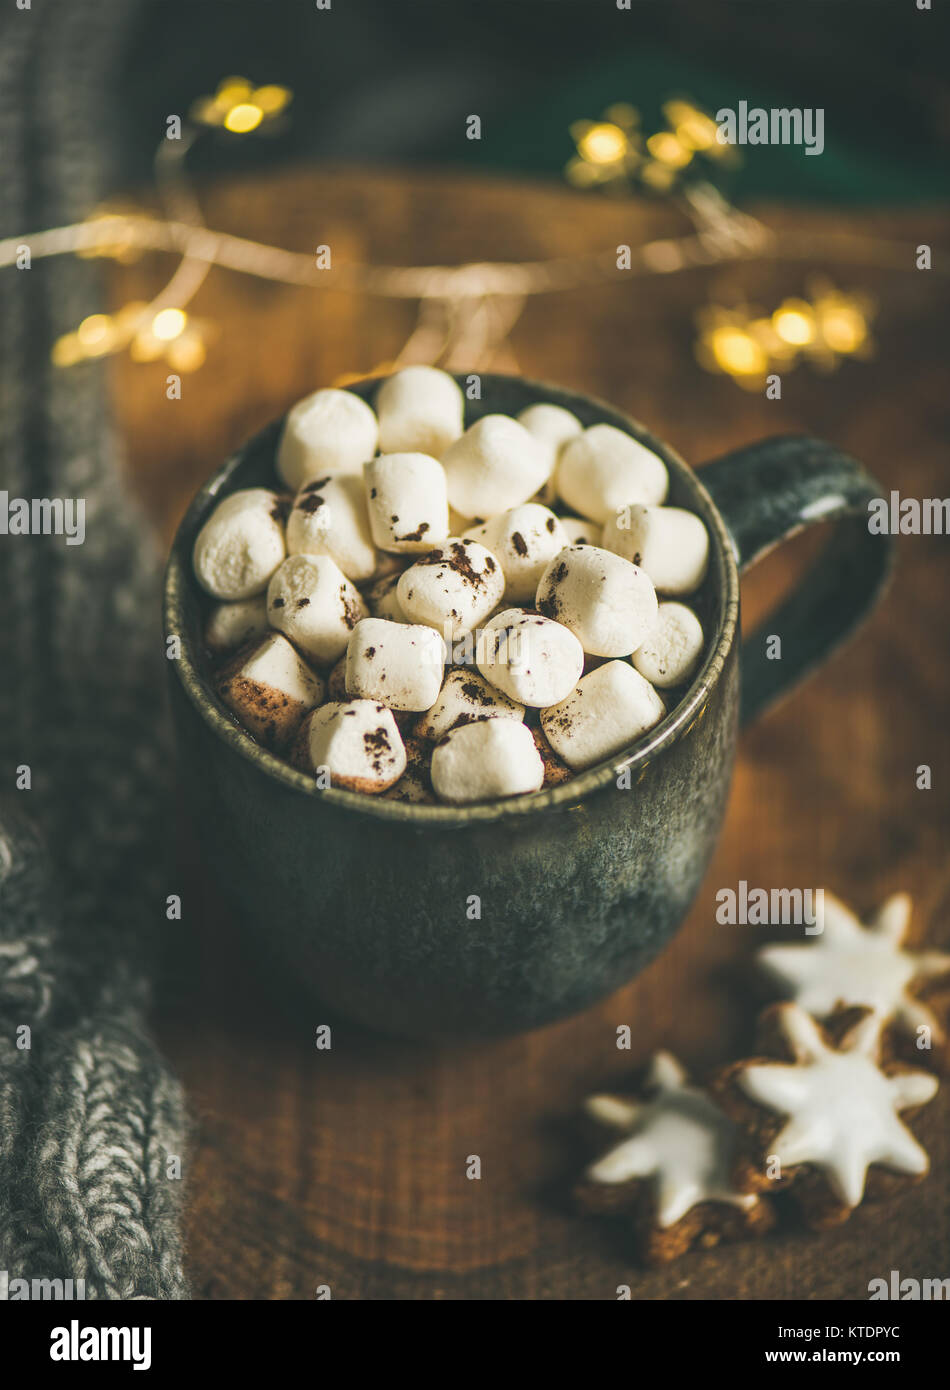 Christmas winter hot chocolate served with light garland and sweater - Stock Image